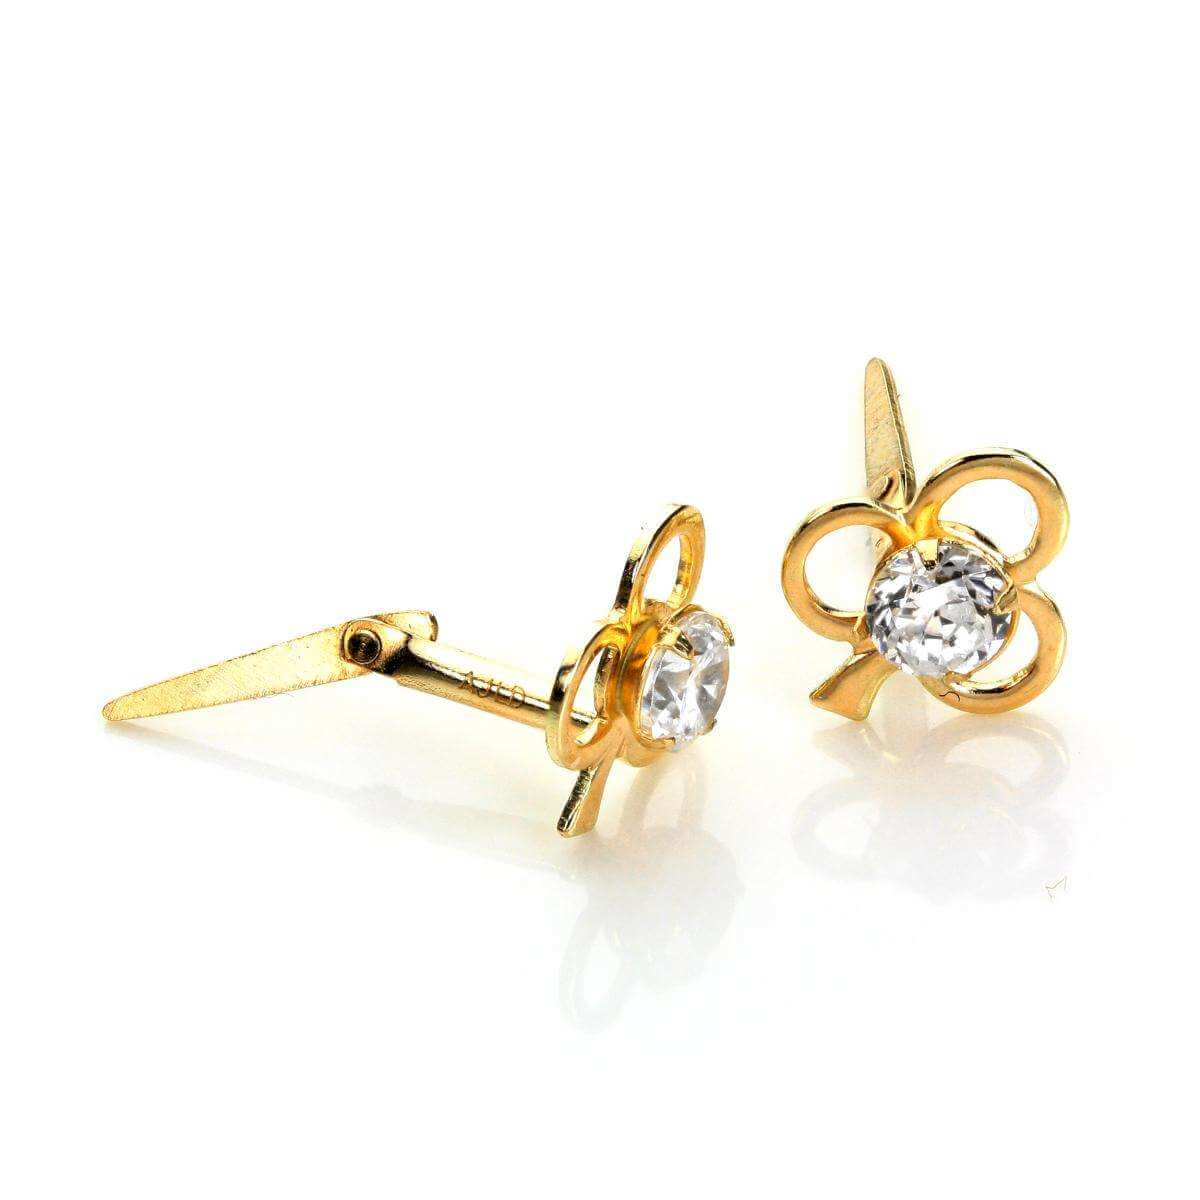 Andralok 9ct Yellow Gold Ace of Clubs 3mm Stud Earrings